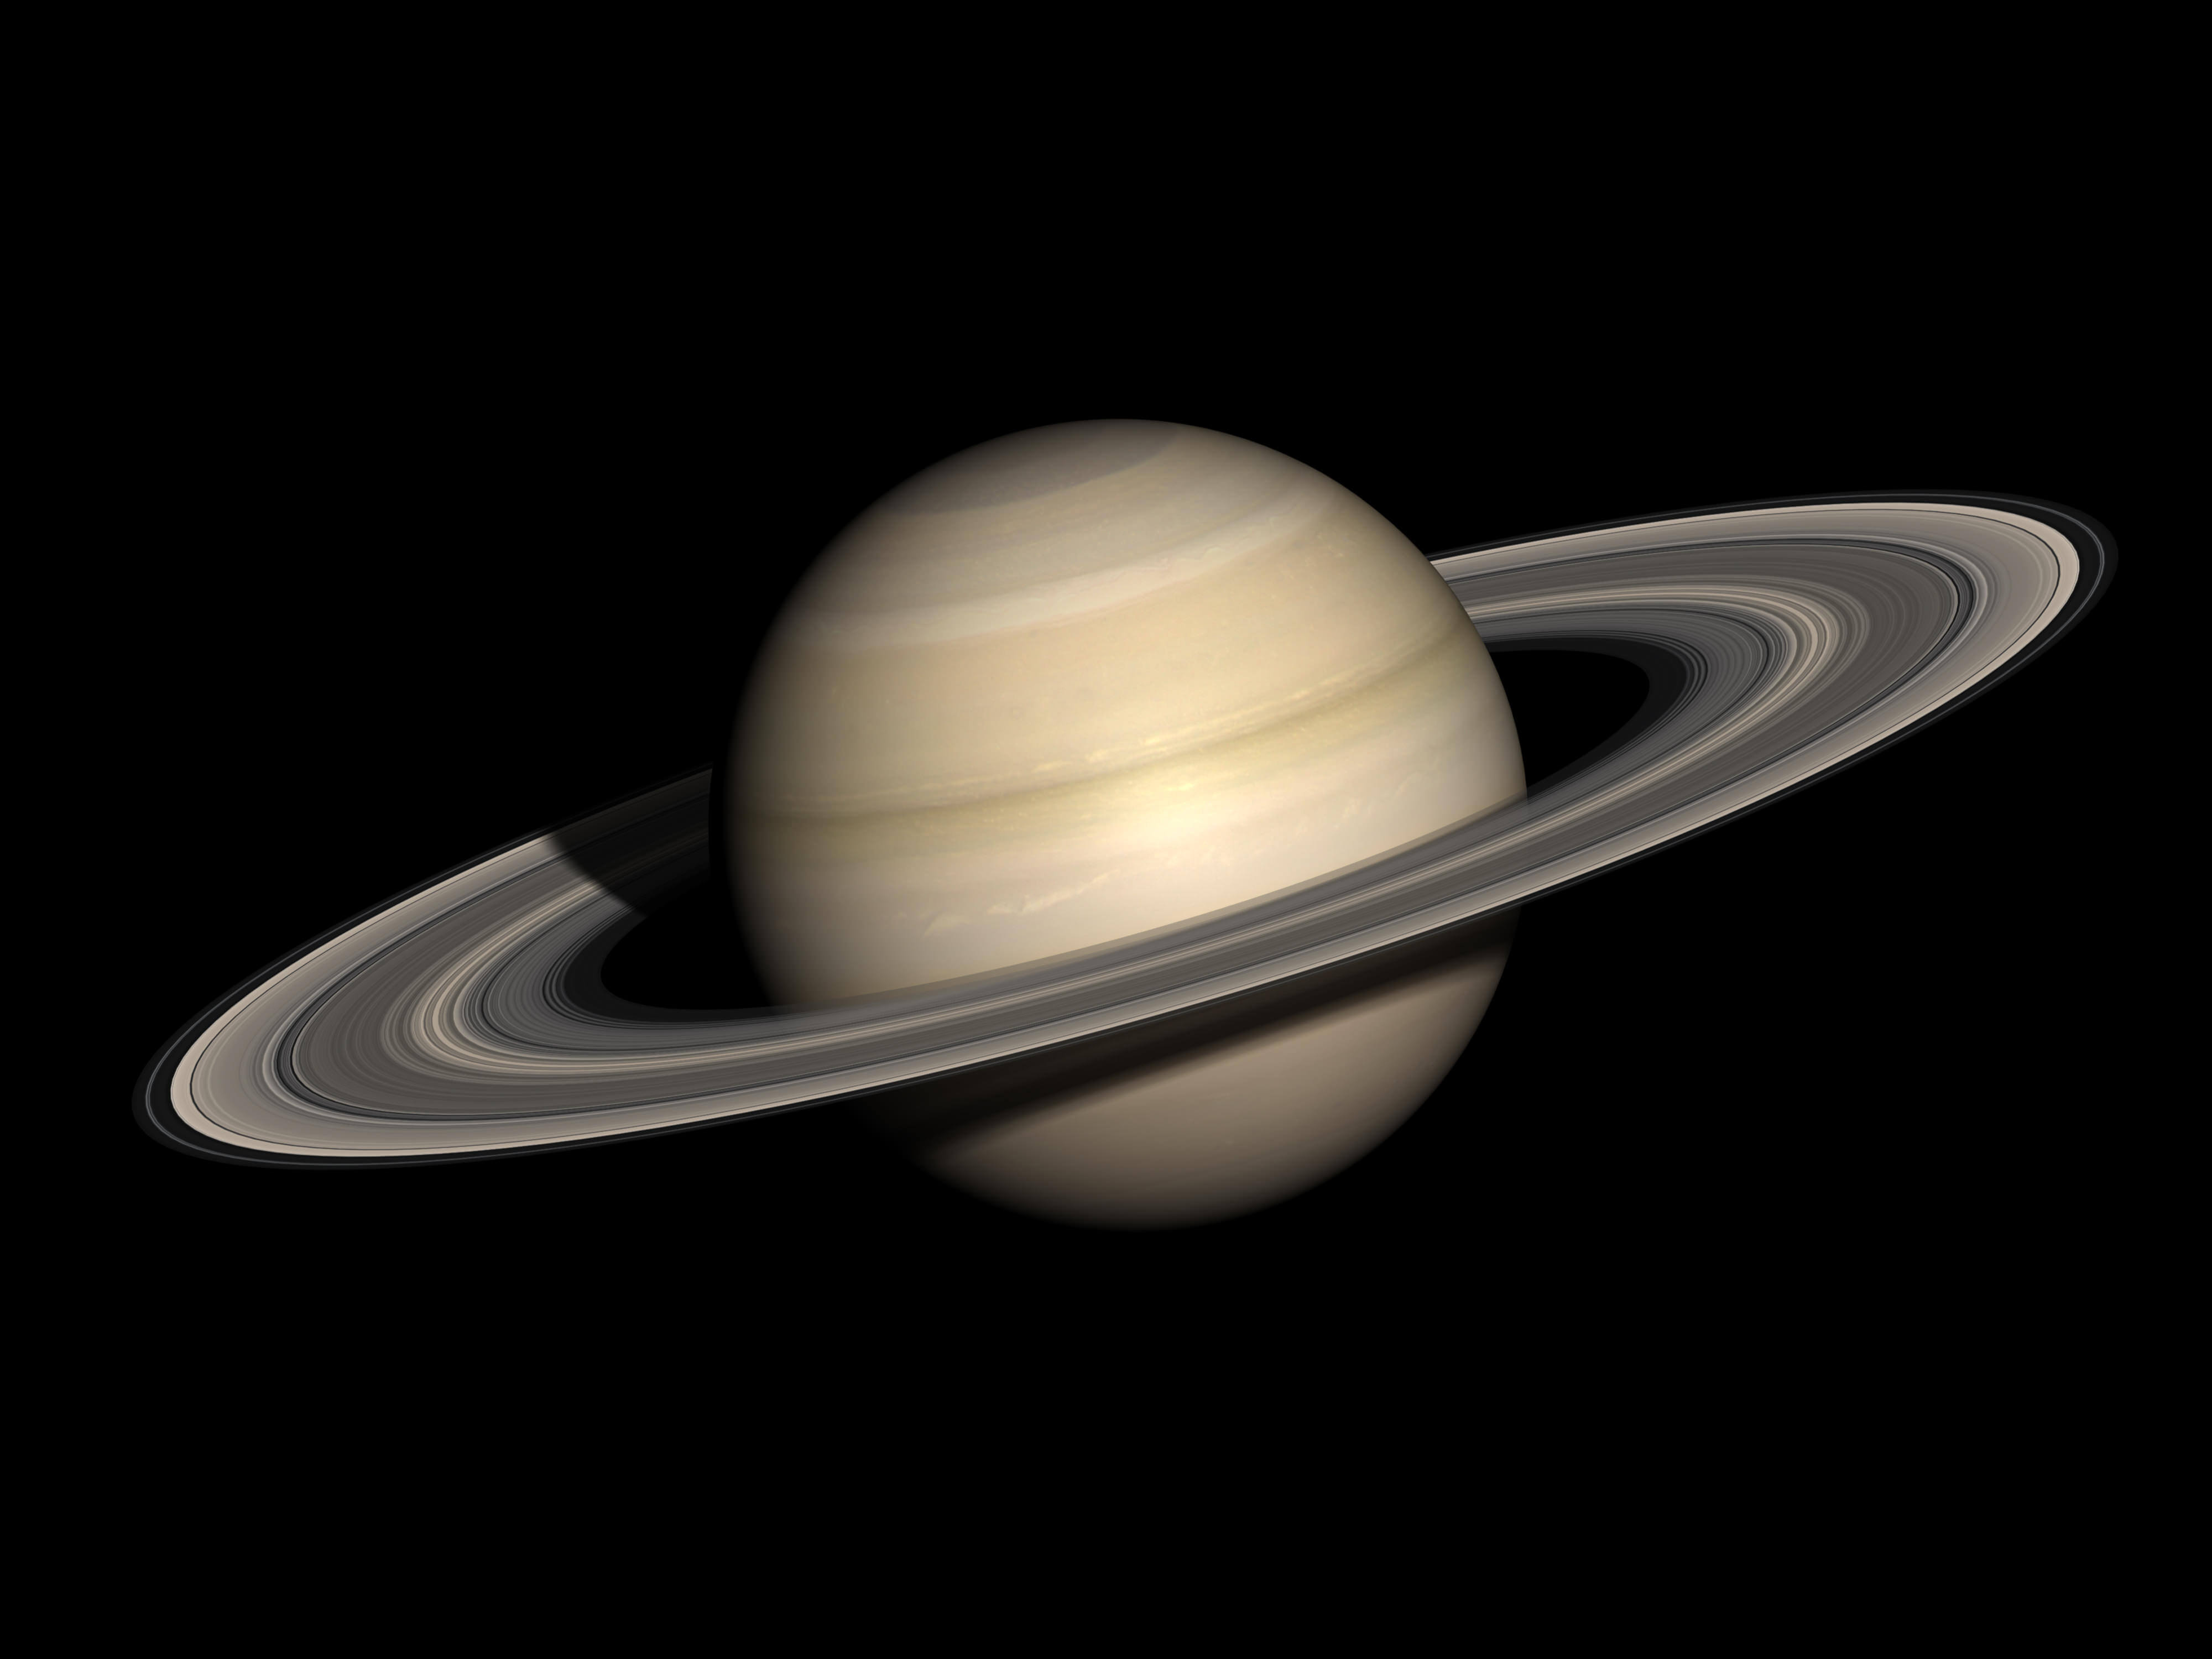 Many astronomers believed that the rings of Saturn were its satellites.